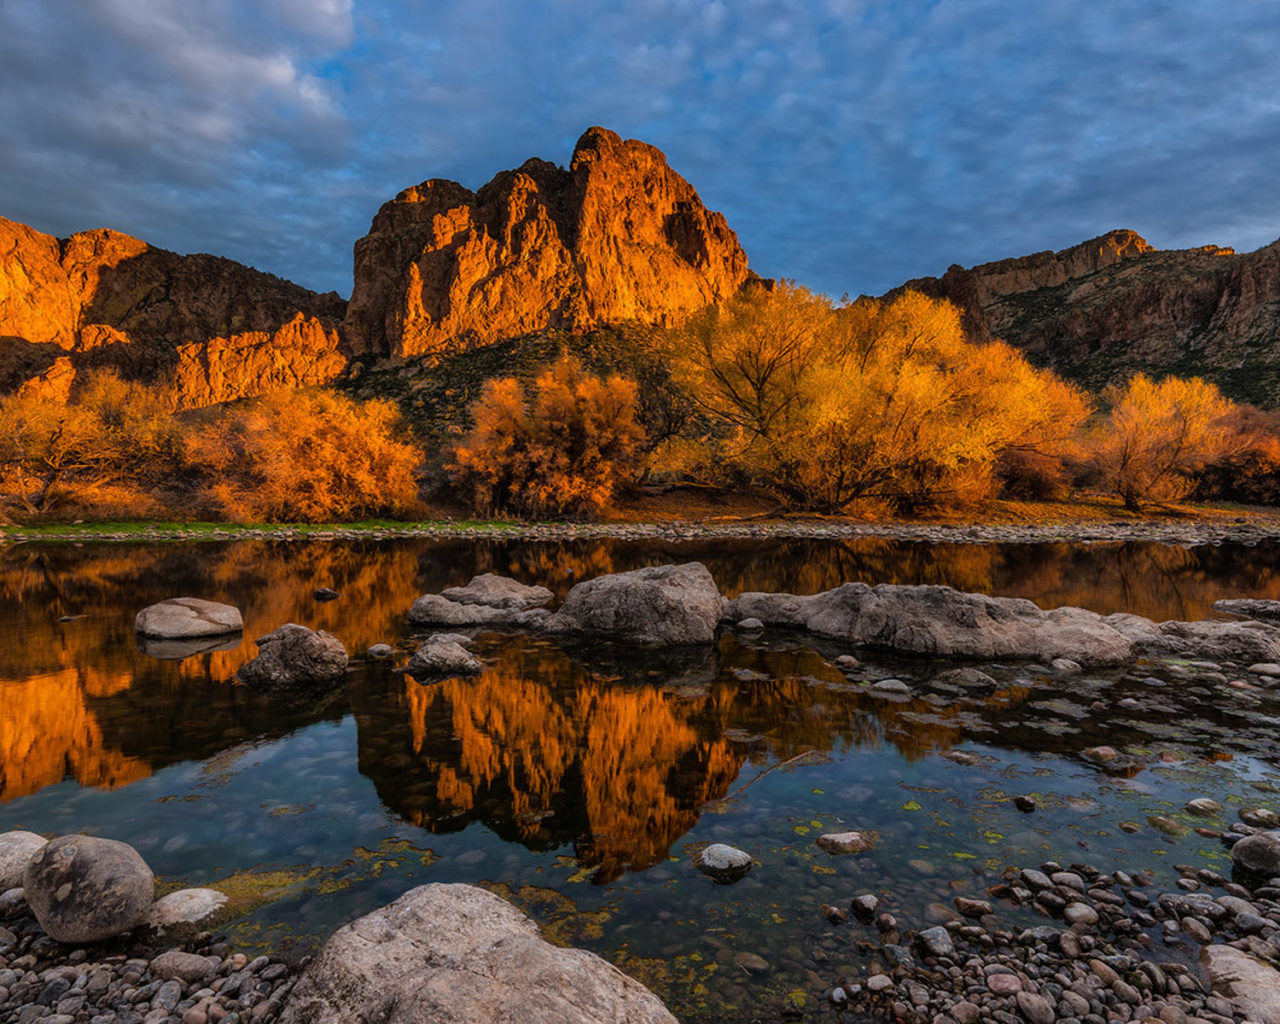 Fall Wallpaper For Desktop 1920x1080 Sunsire Bulldog Cliffs Lower Salt River Goldfield